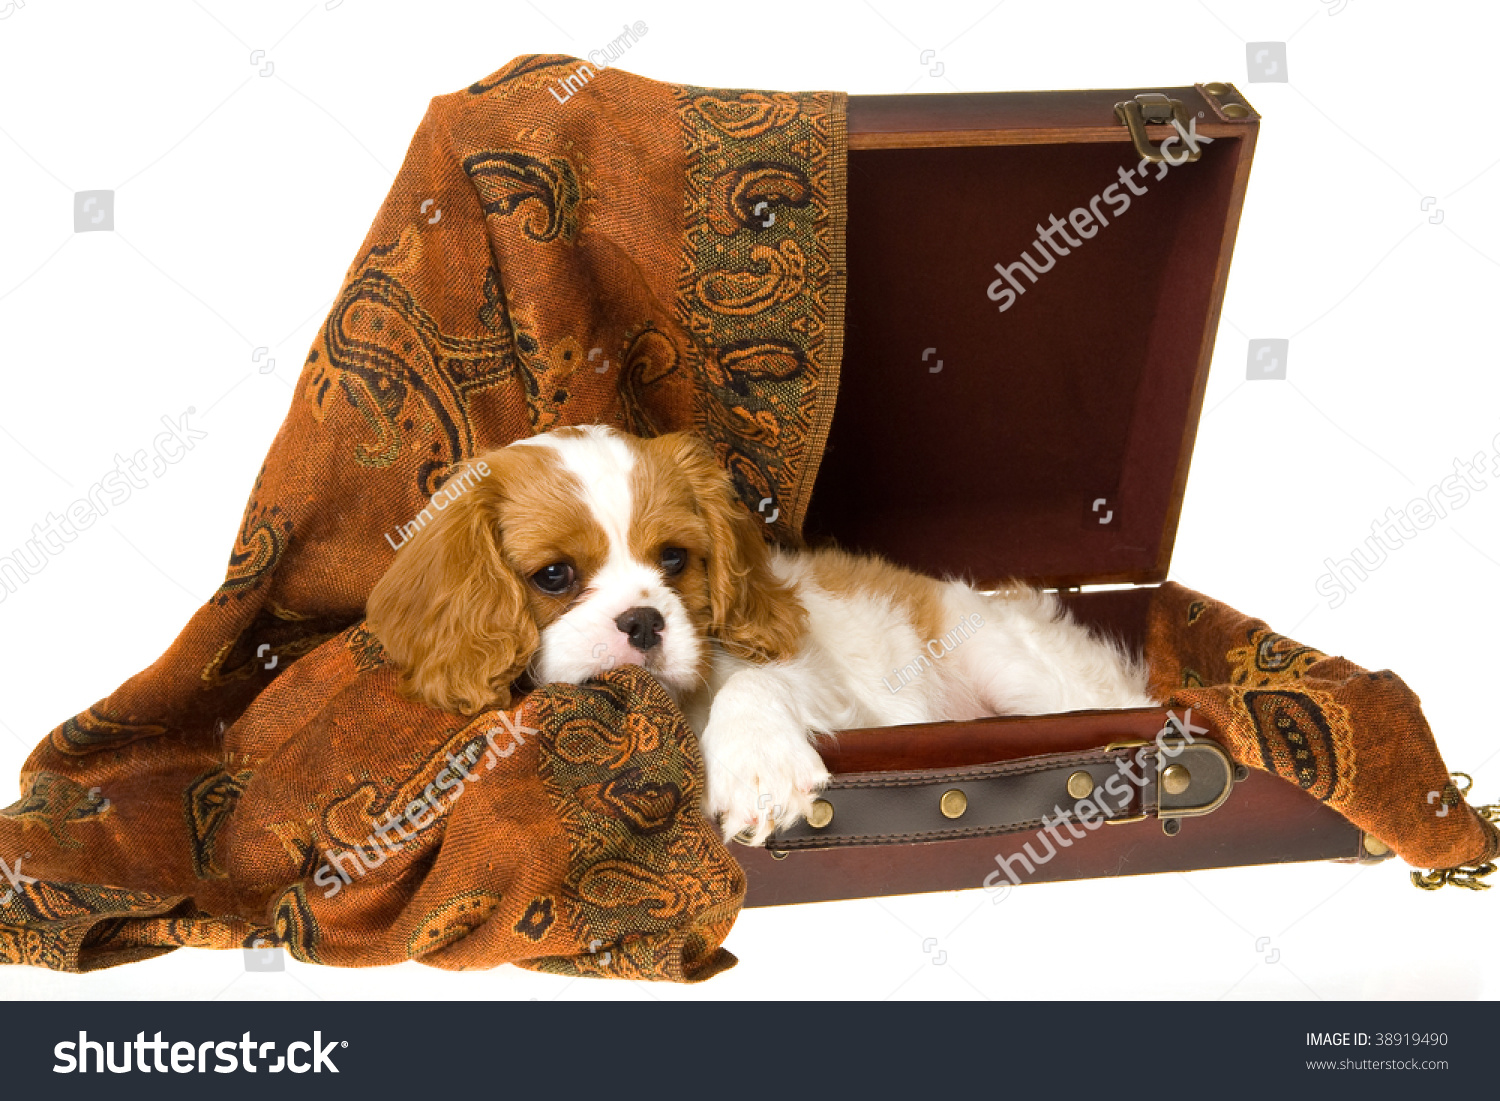 Cute Cavalier King Charles Spaniel Puppy Stock Photo Edit Now 38919490